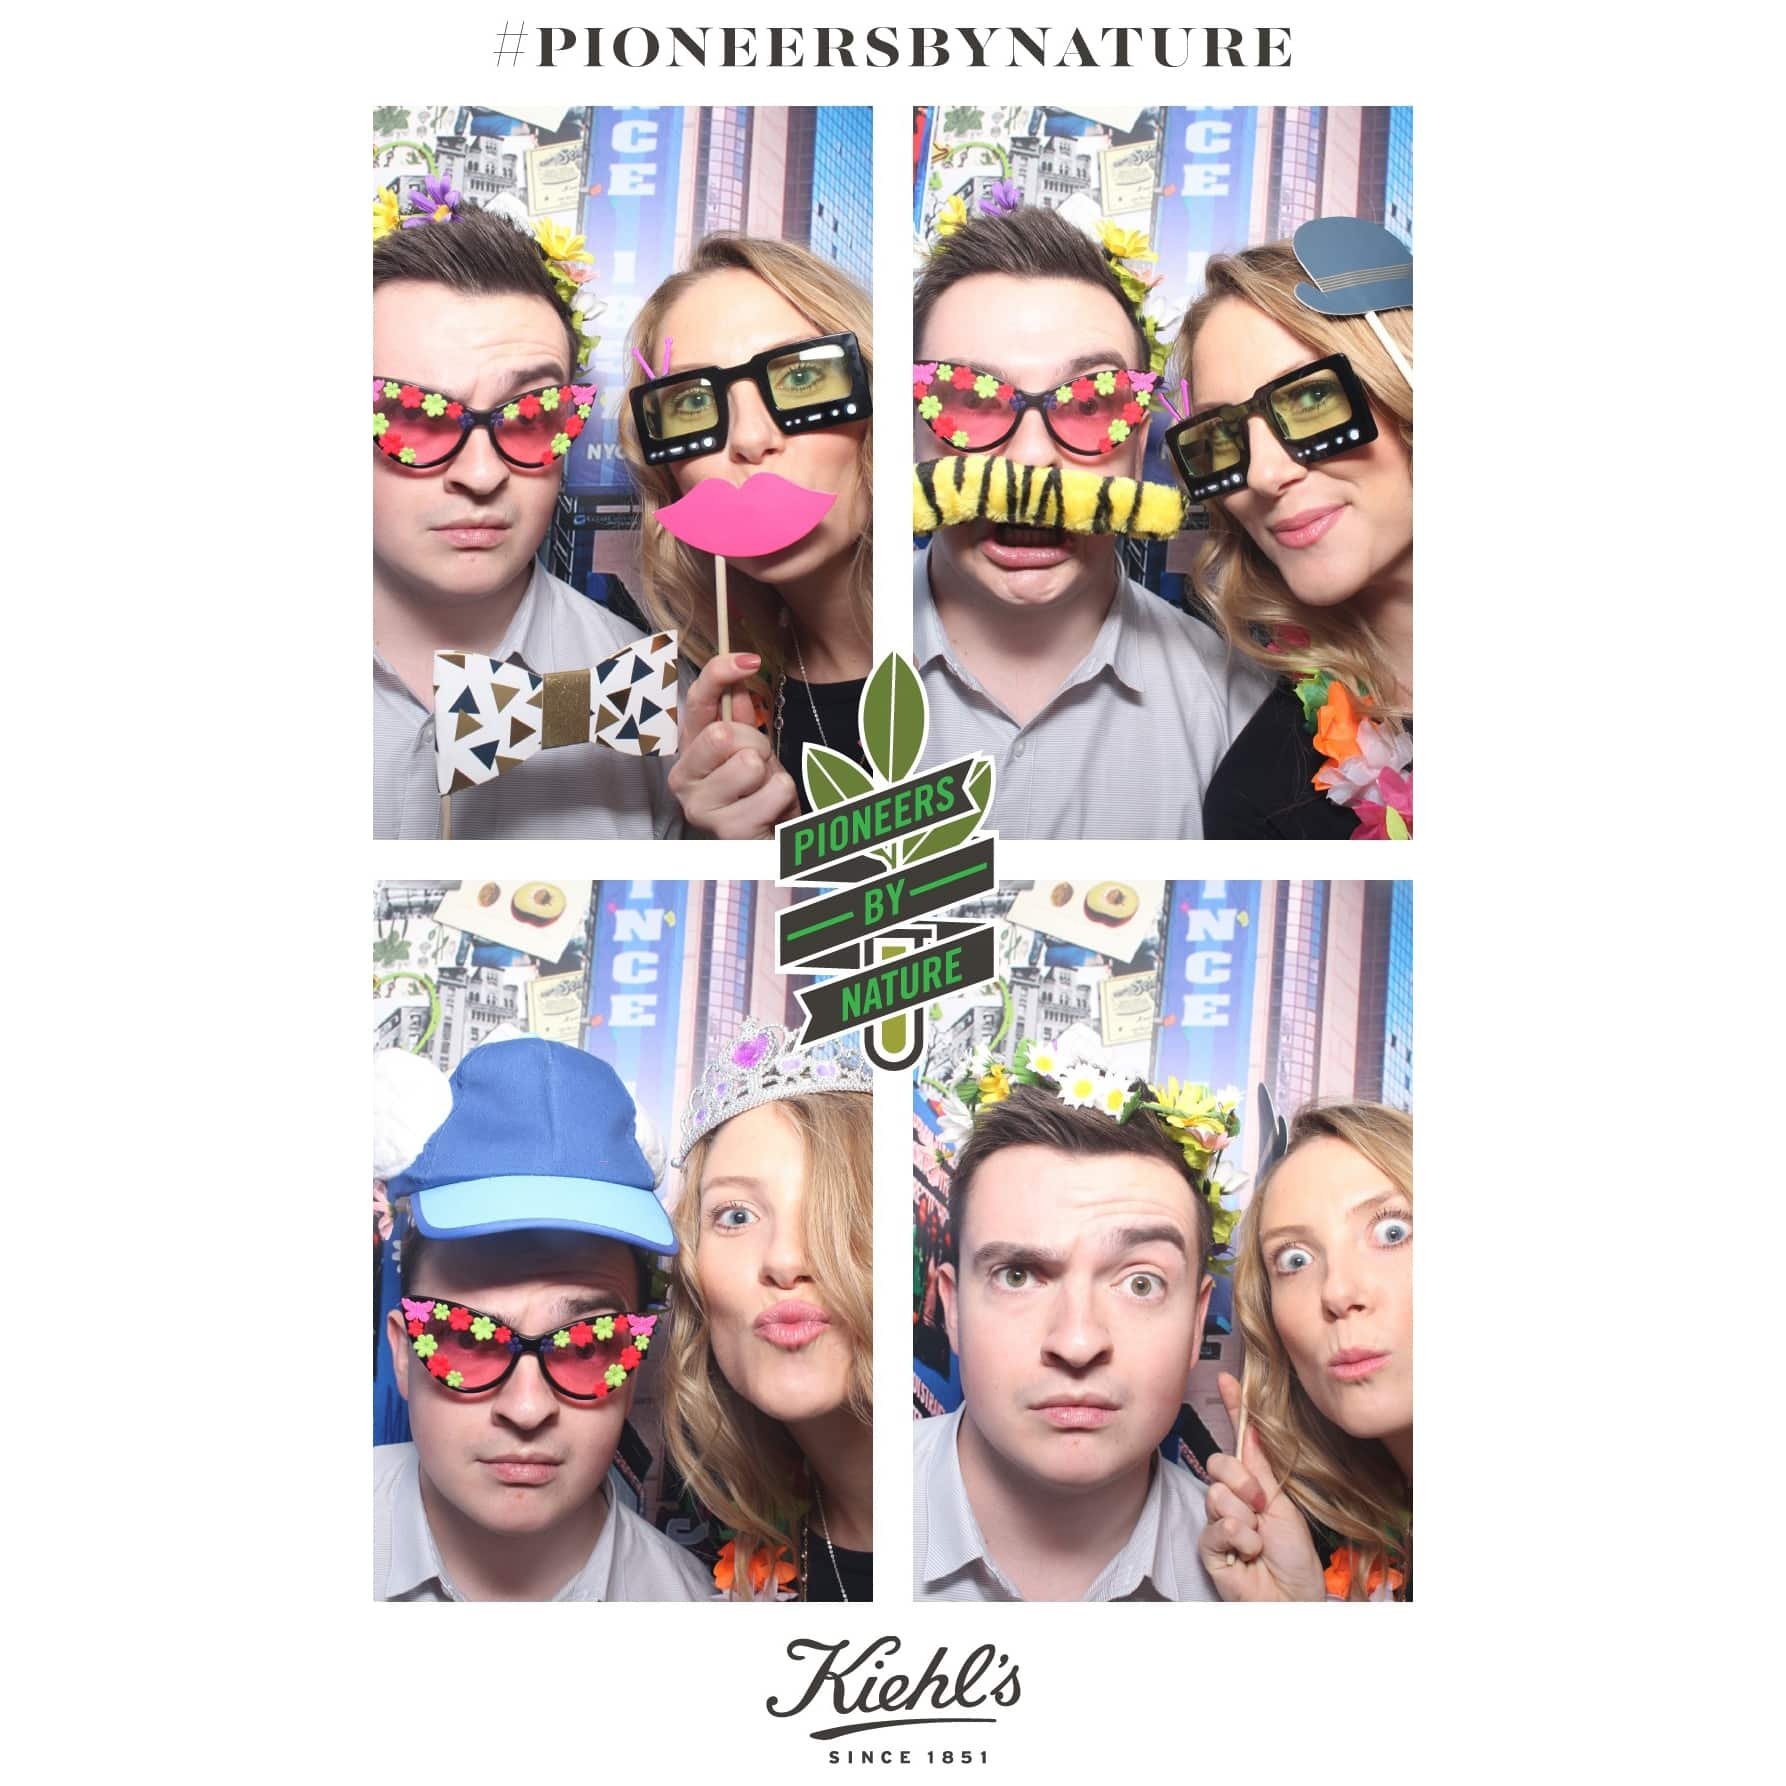 Me and Holly from Diary Directory having fun in the Photobooth